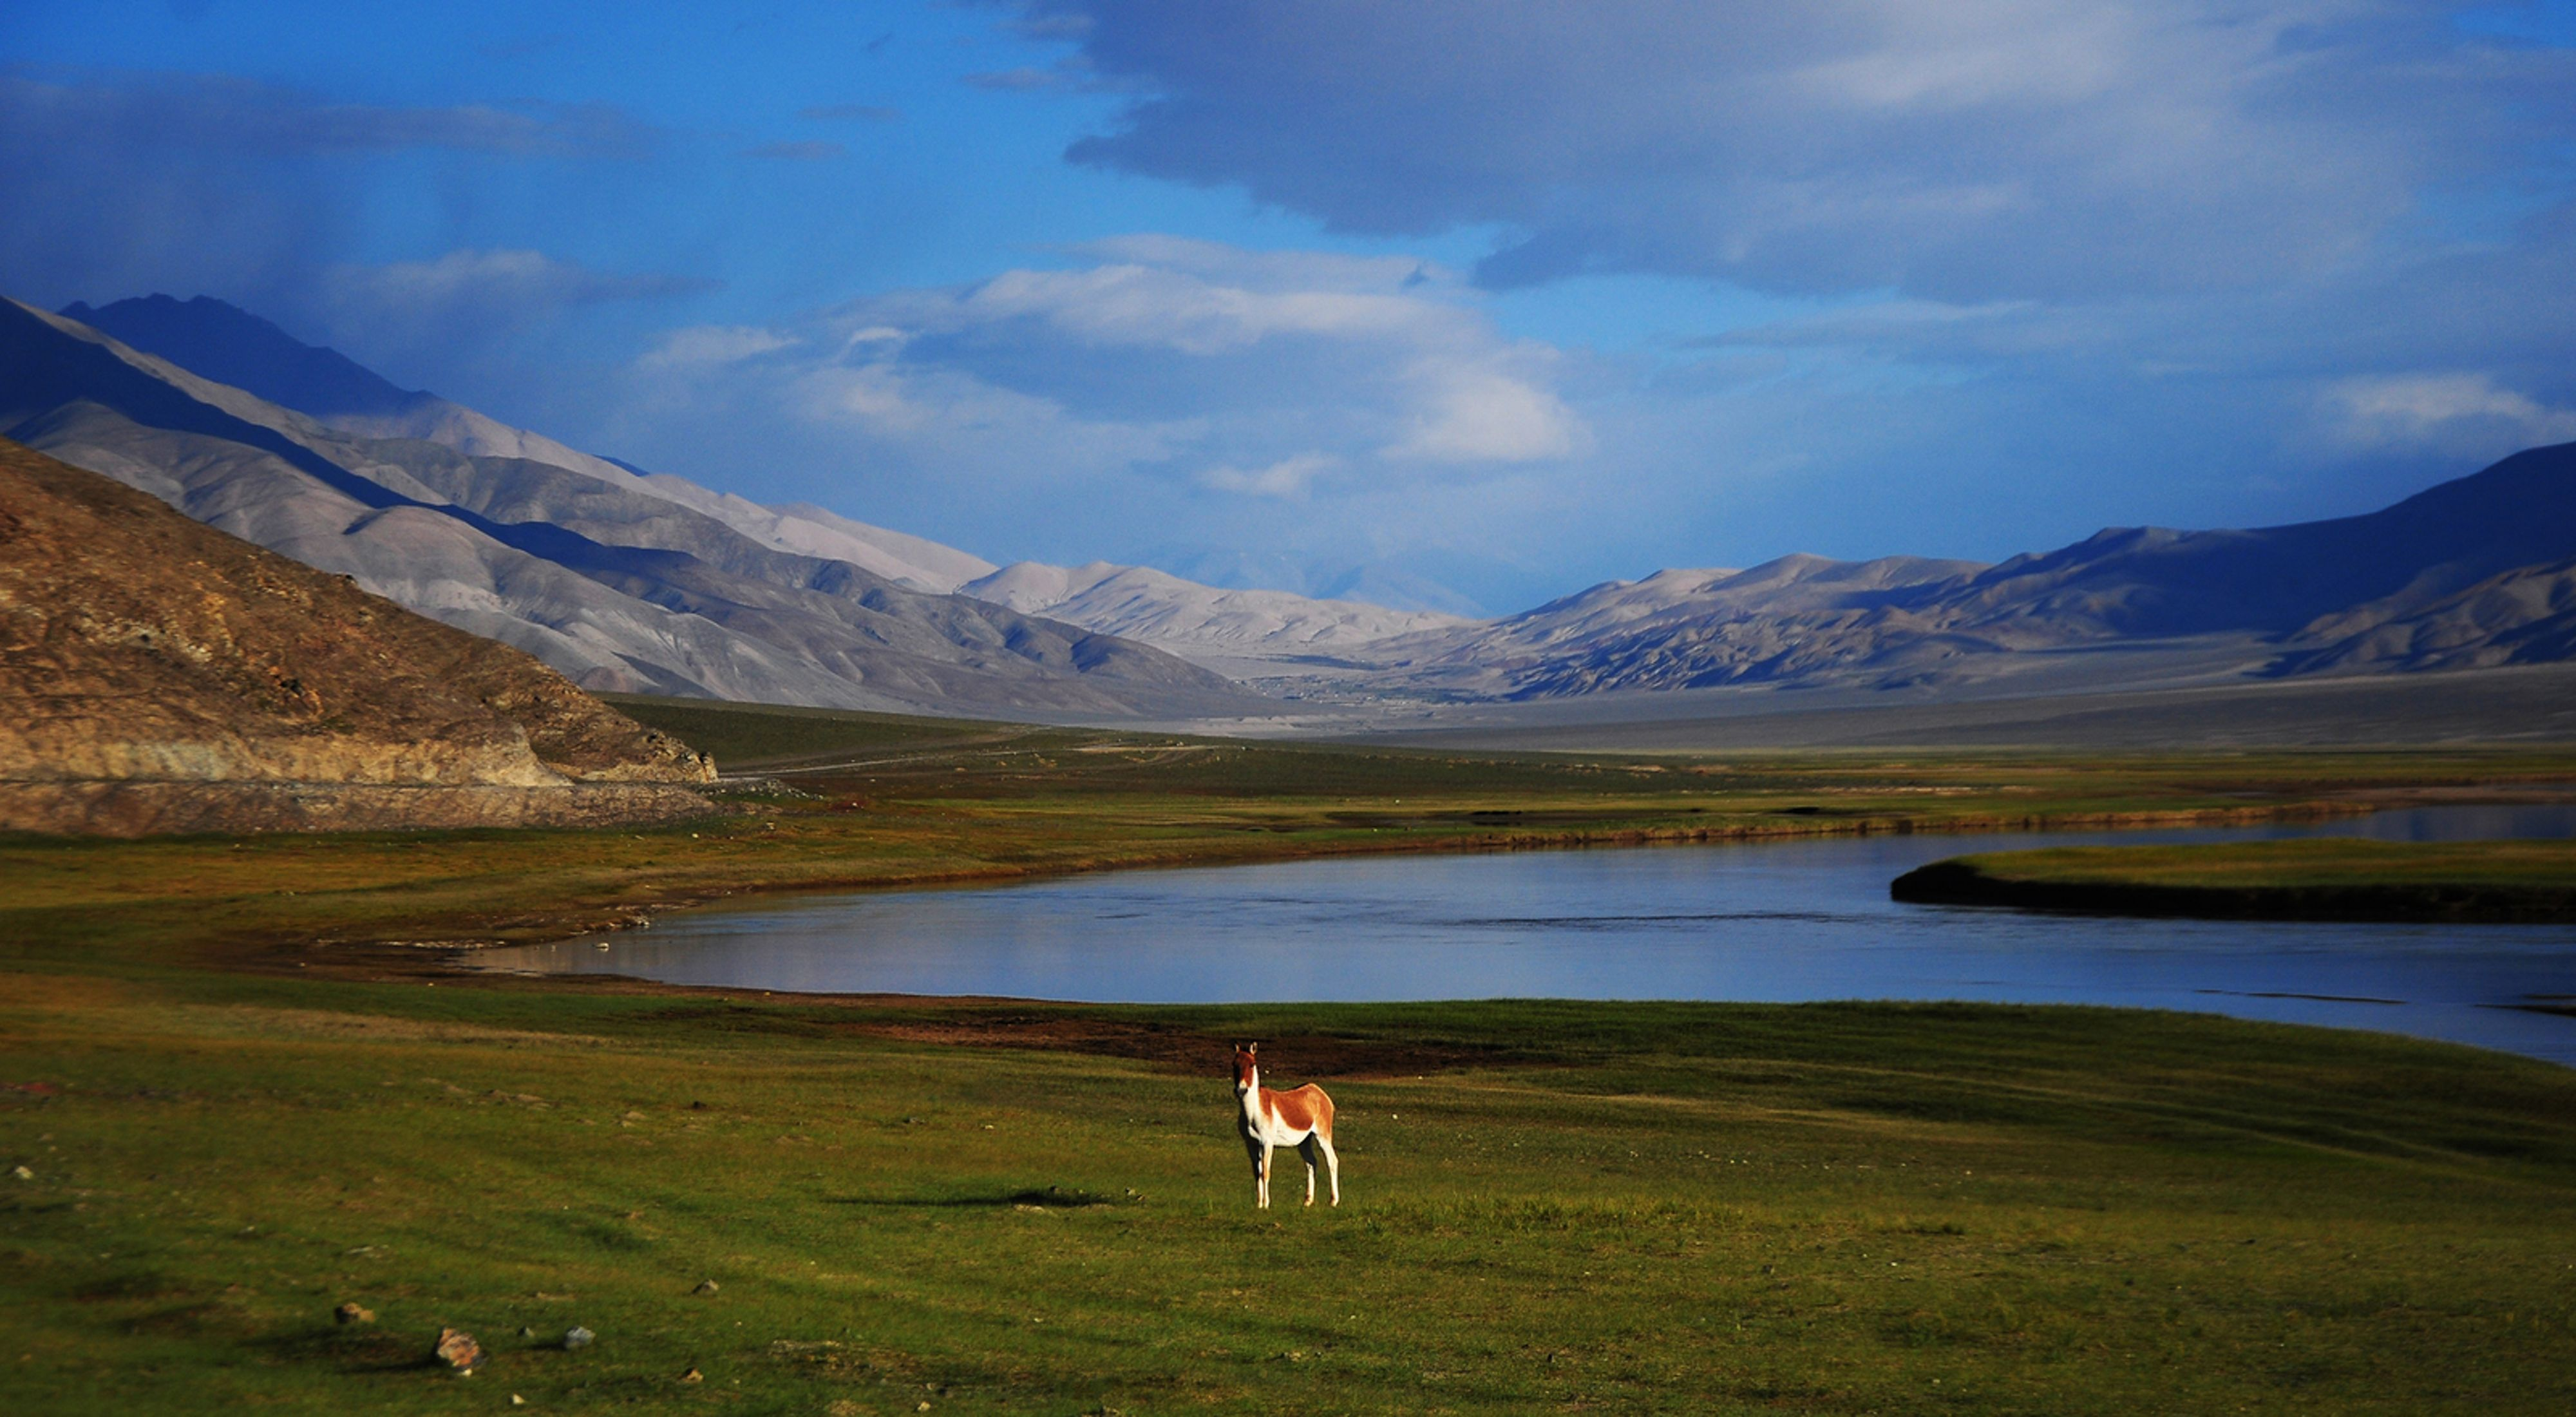 Kiang in front of lake and mountains in background